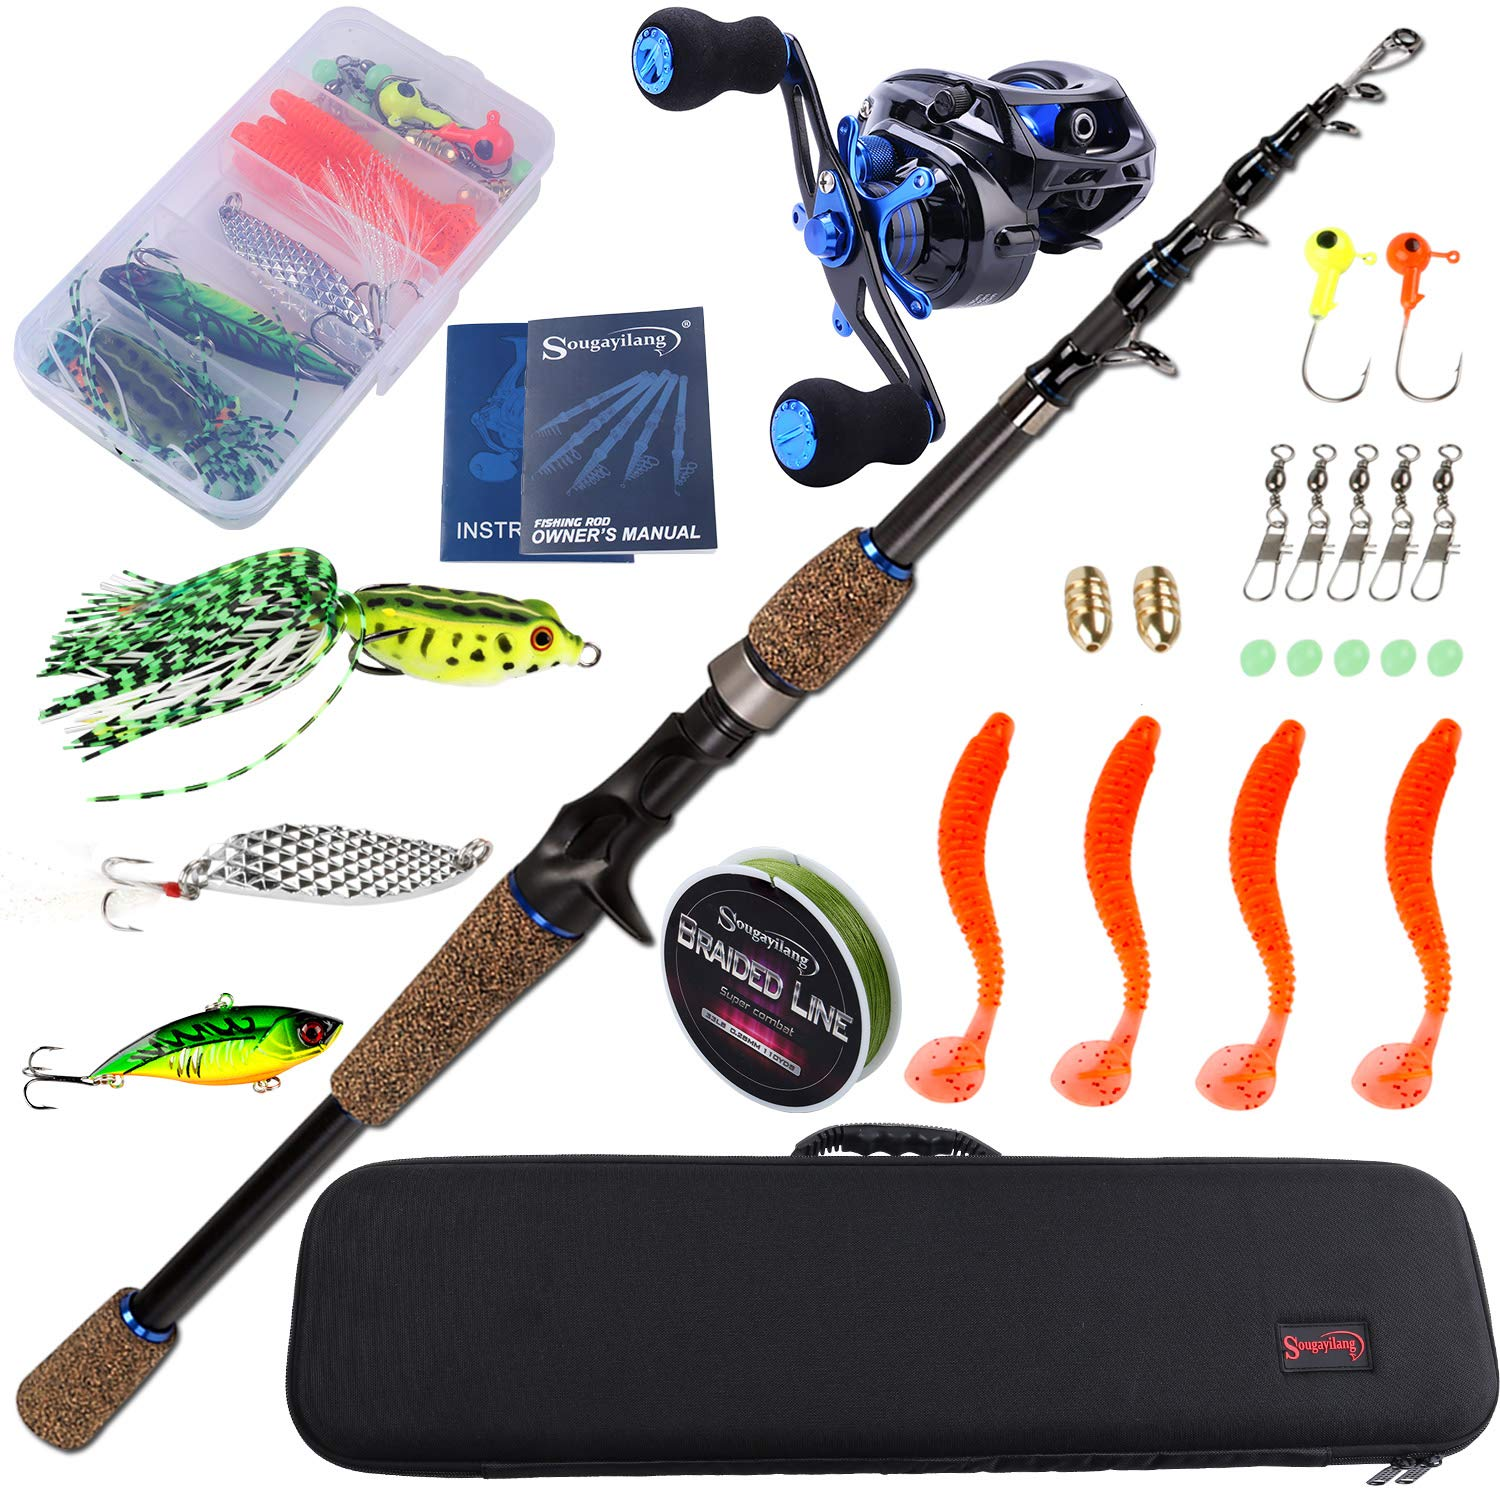 Sougayilang Fishing Combos Full Kits with Carrier Bag,Baitcasting Fishing Reel-Right 6.9ft Fishing Poles,Fishing Gear Set with Line Lures Hooks for Sea Saltwater Freshwater Boat Fishing. by Sougayilang